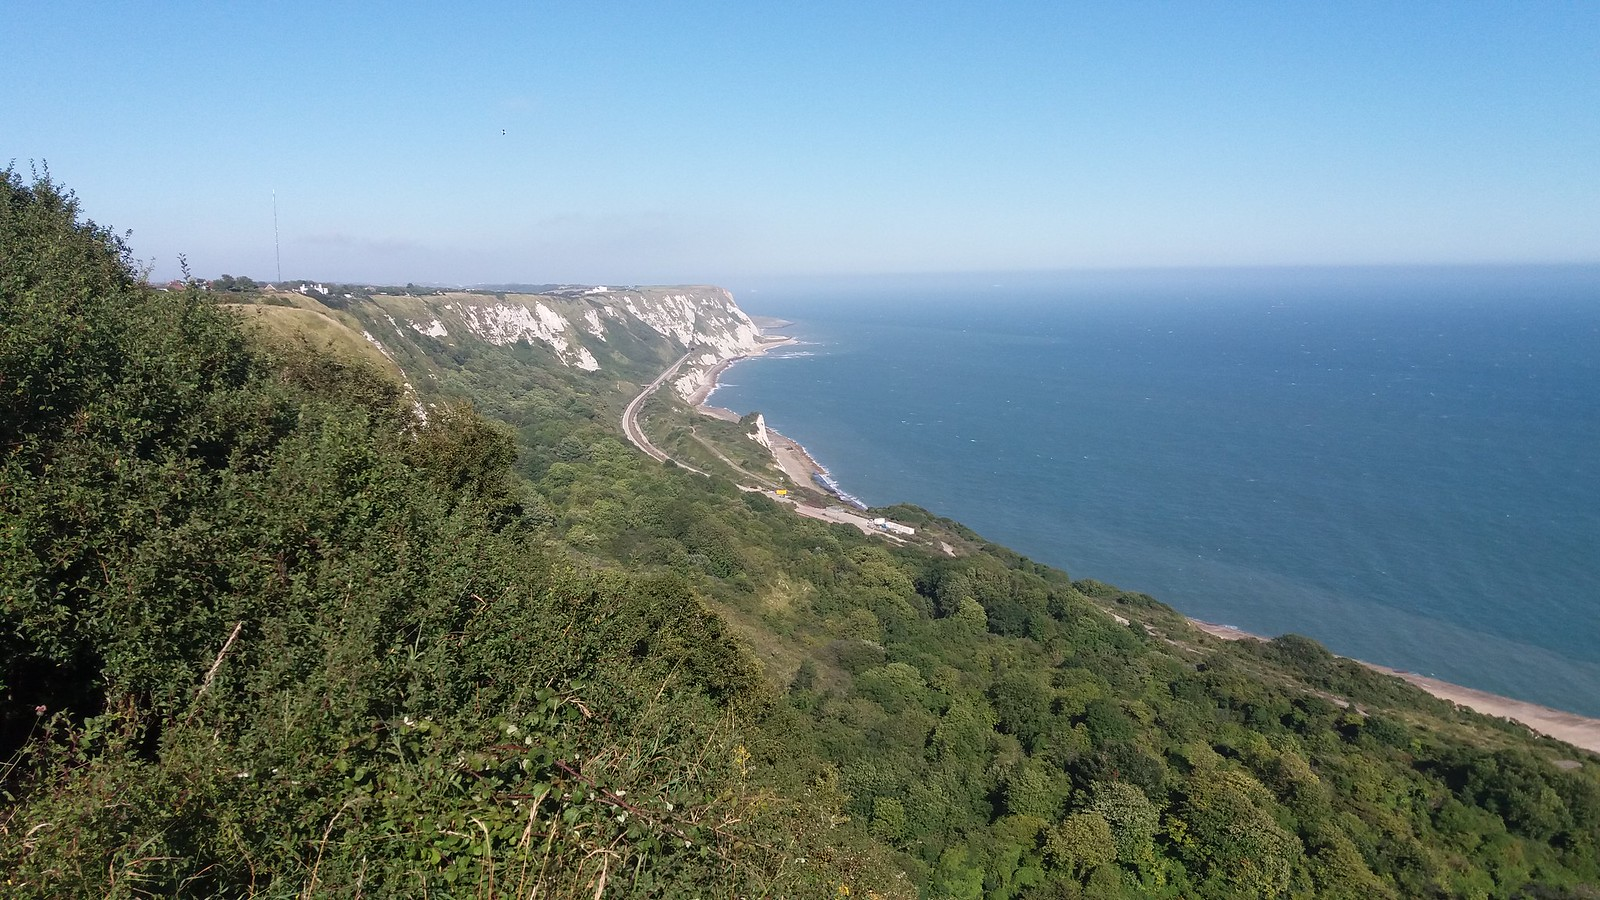 20160812_170104 The Folkestone Warren, rail line and Abbots Cliff in the distance